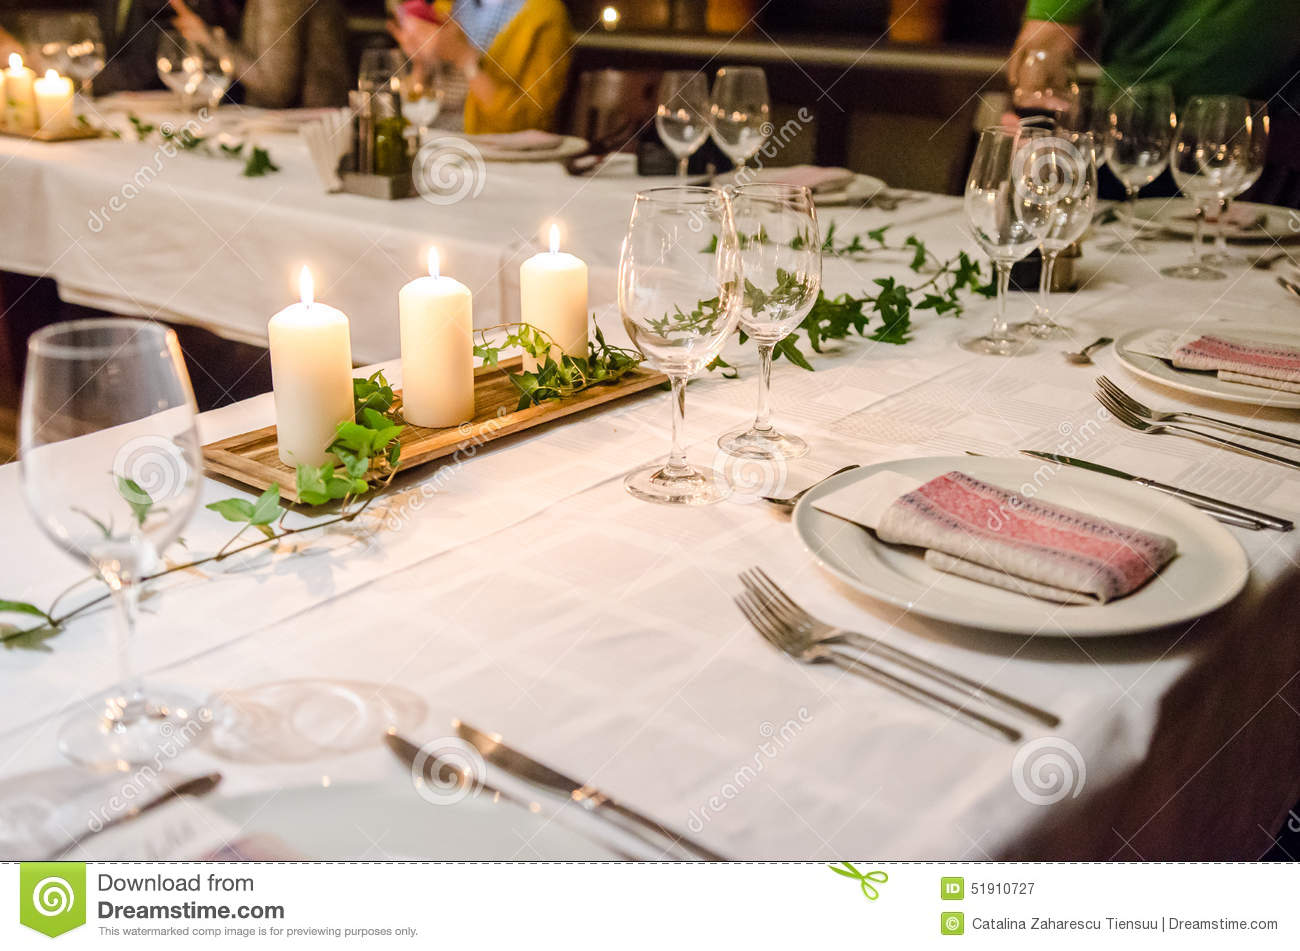 Dinner table setup. Seasonal candles. & Dinner table setup stock image. Image of seasonal candles - 51910727